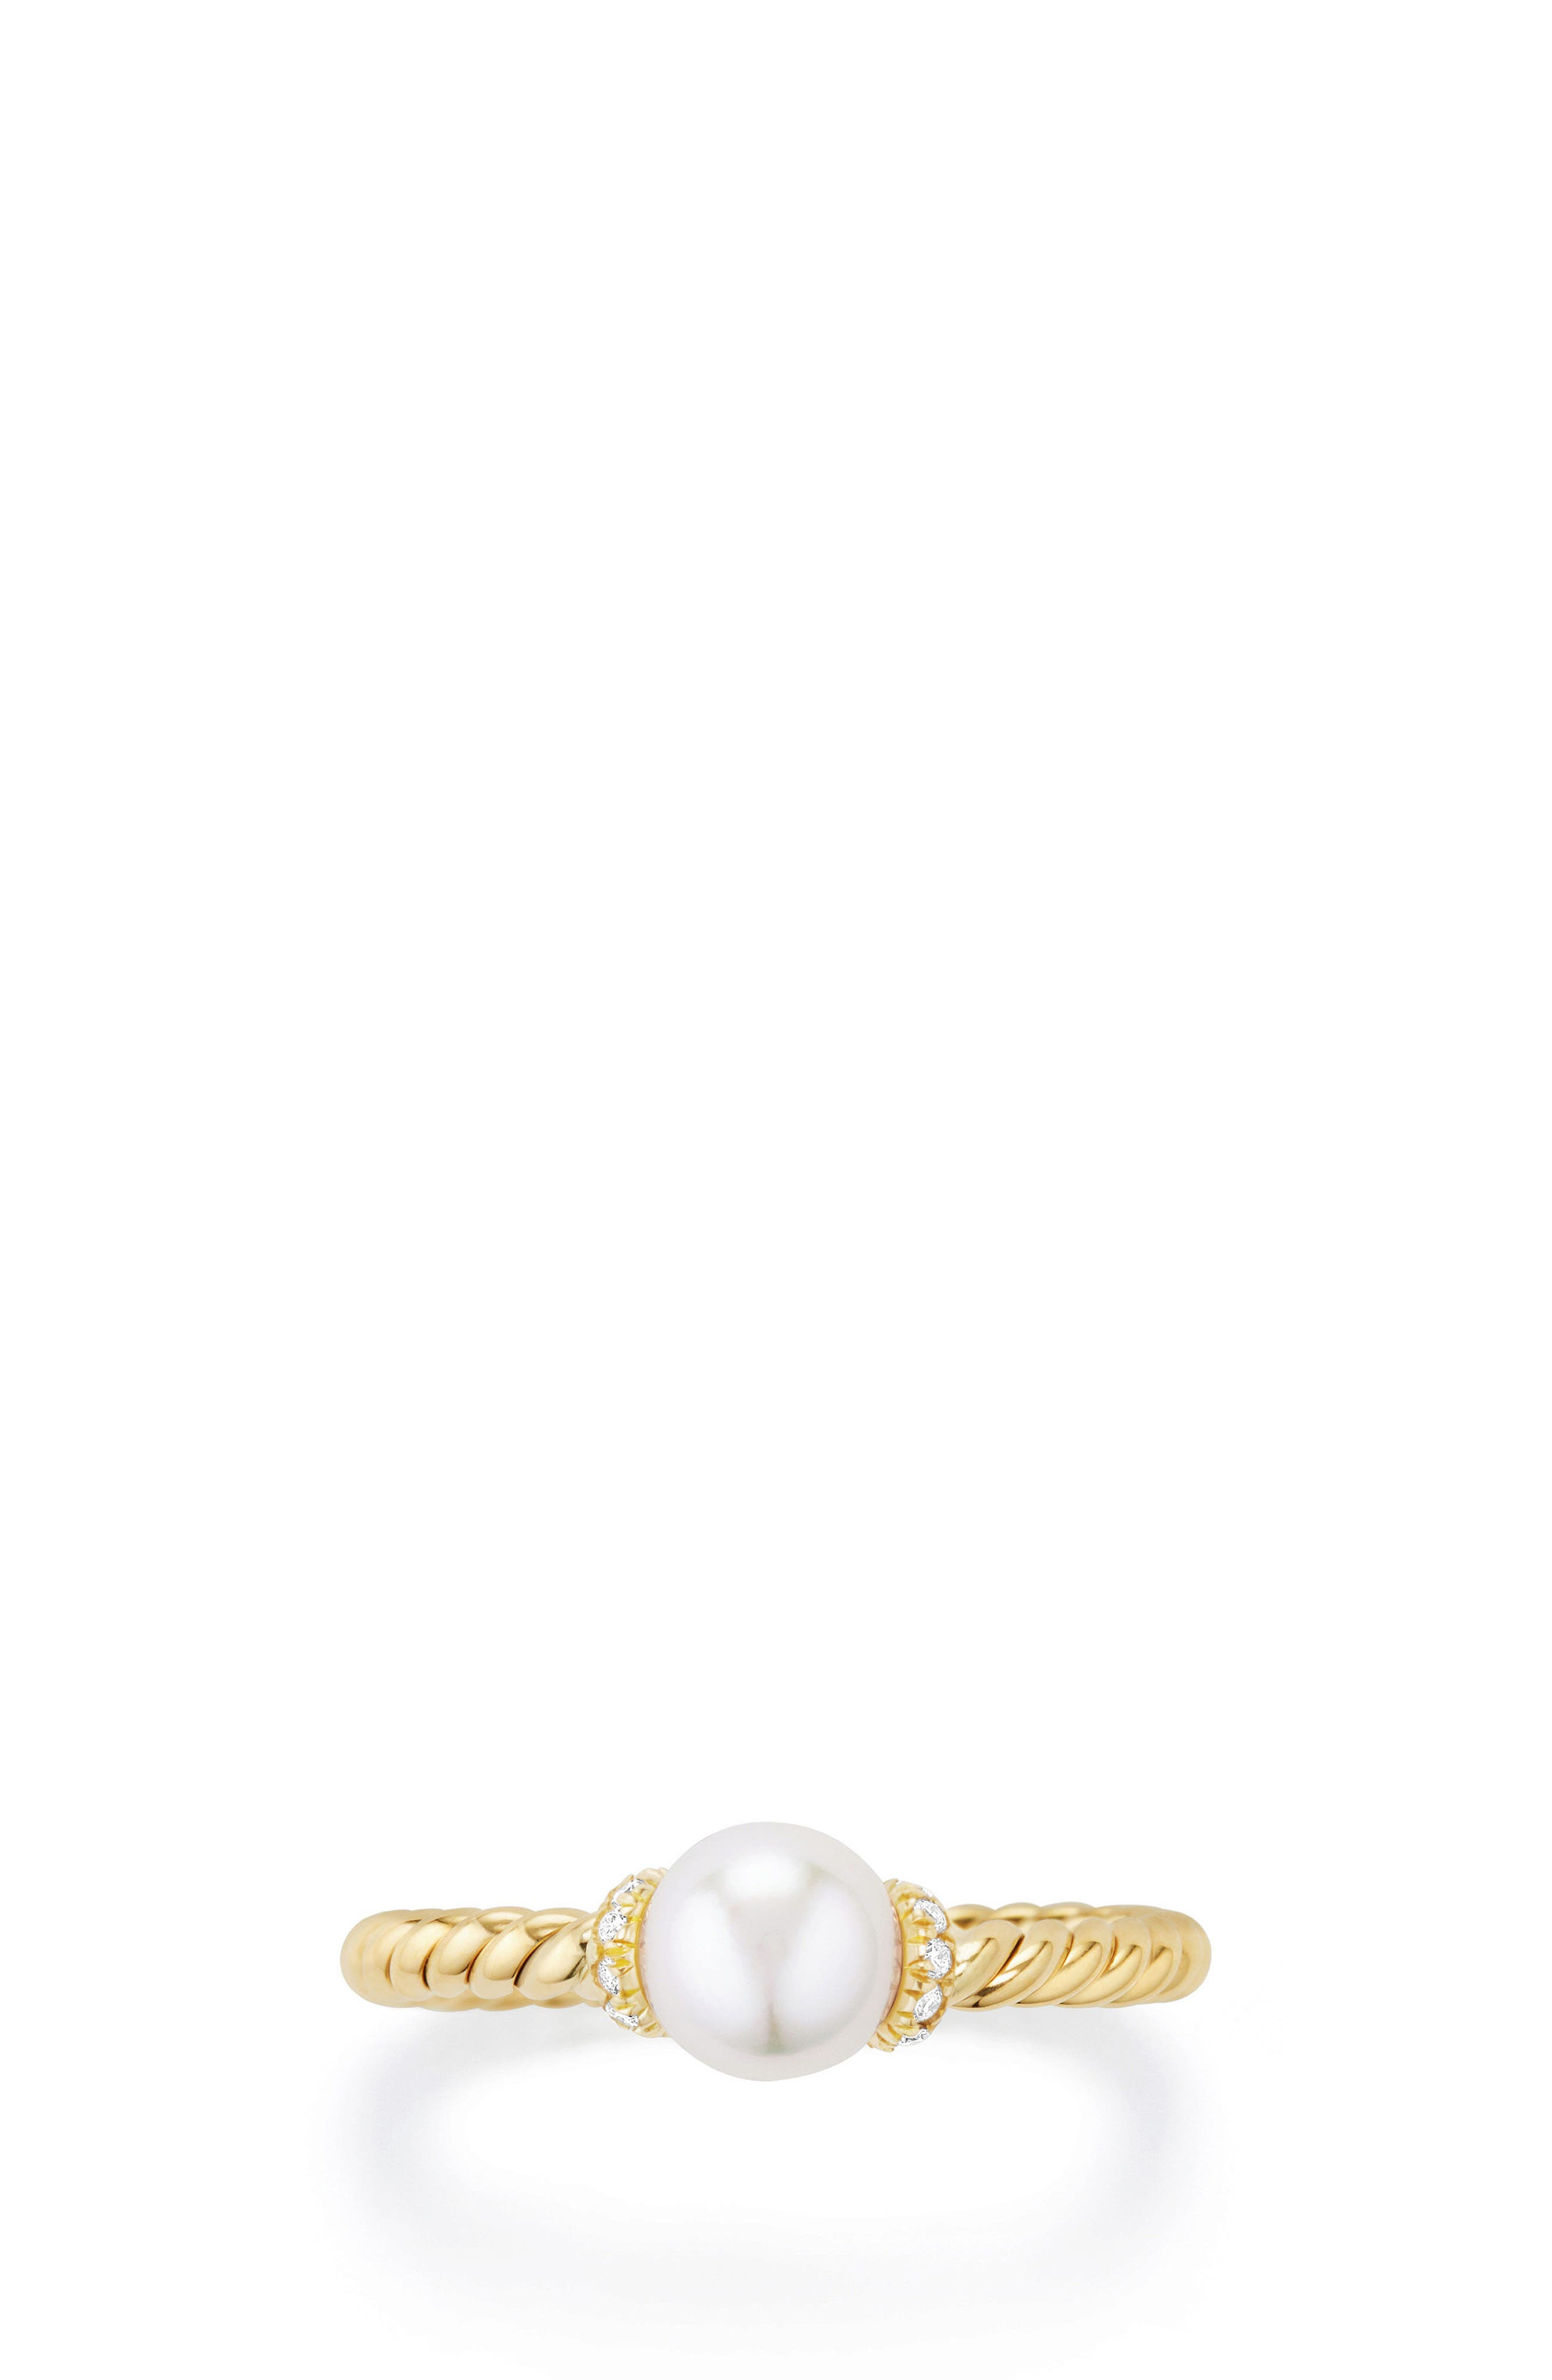 Solari Station Ring with Pearl & Diamonds in 18K Gold,                             Alternate thumbnail 2, color,                             Yellow Gold/ Diamond/ Pearl